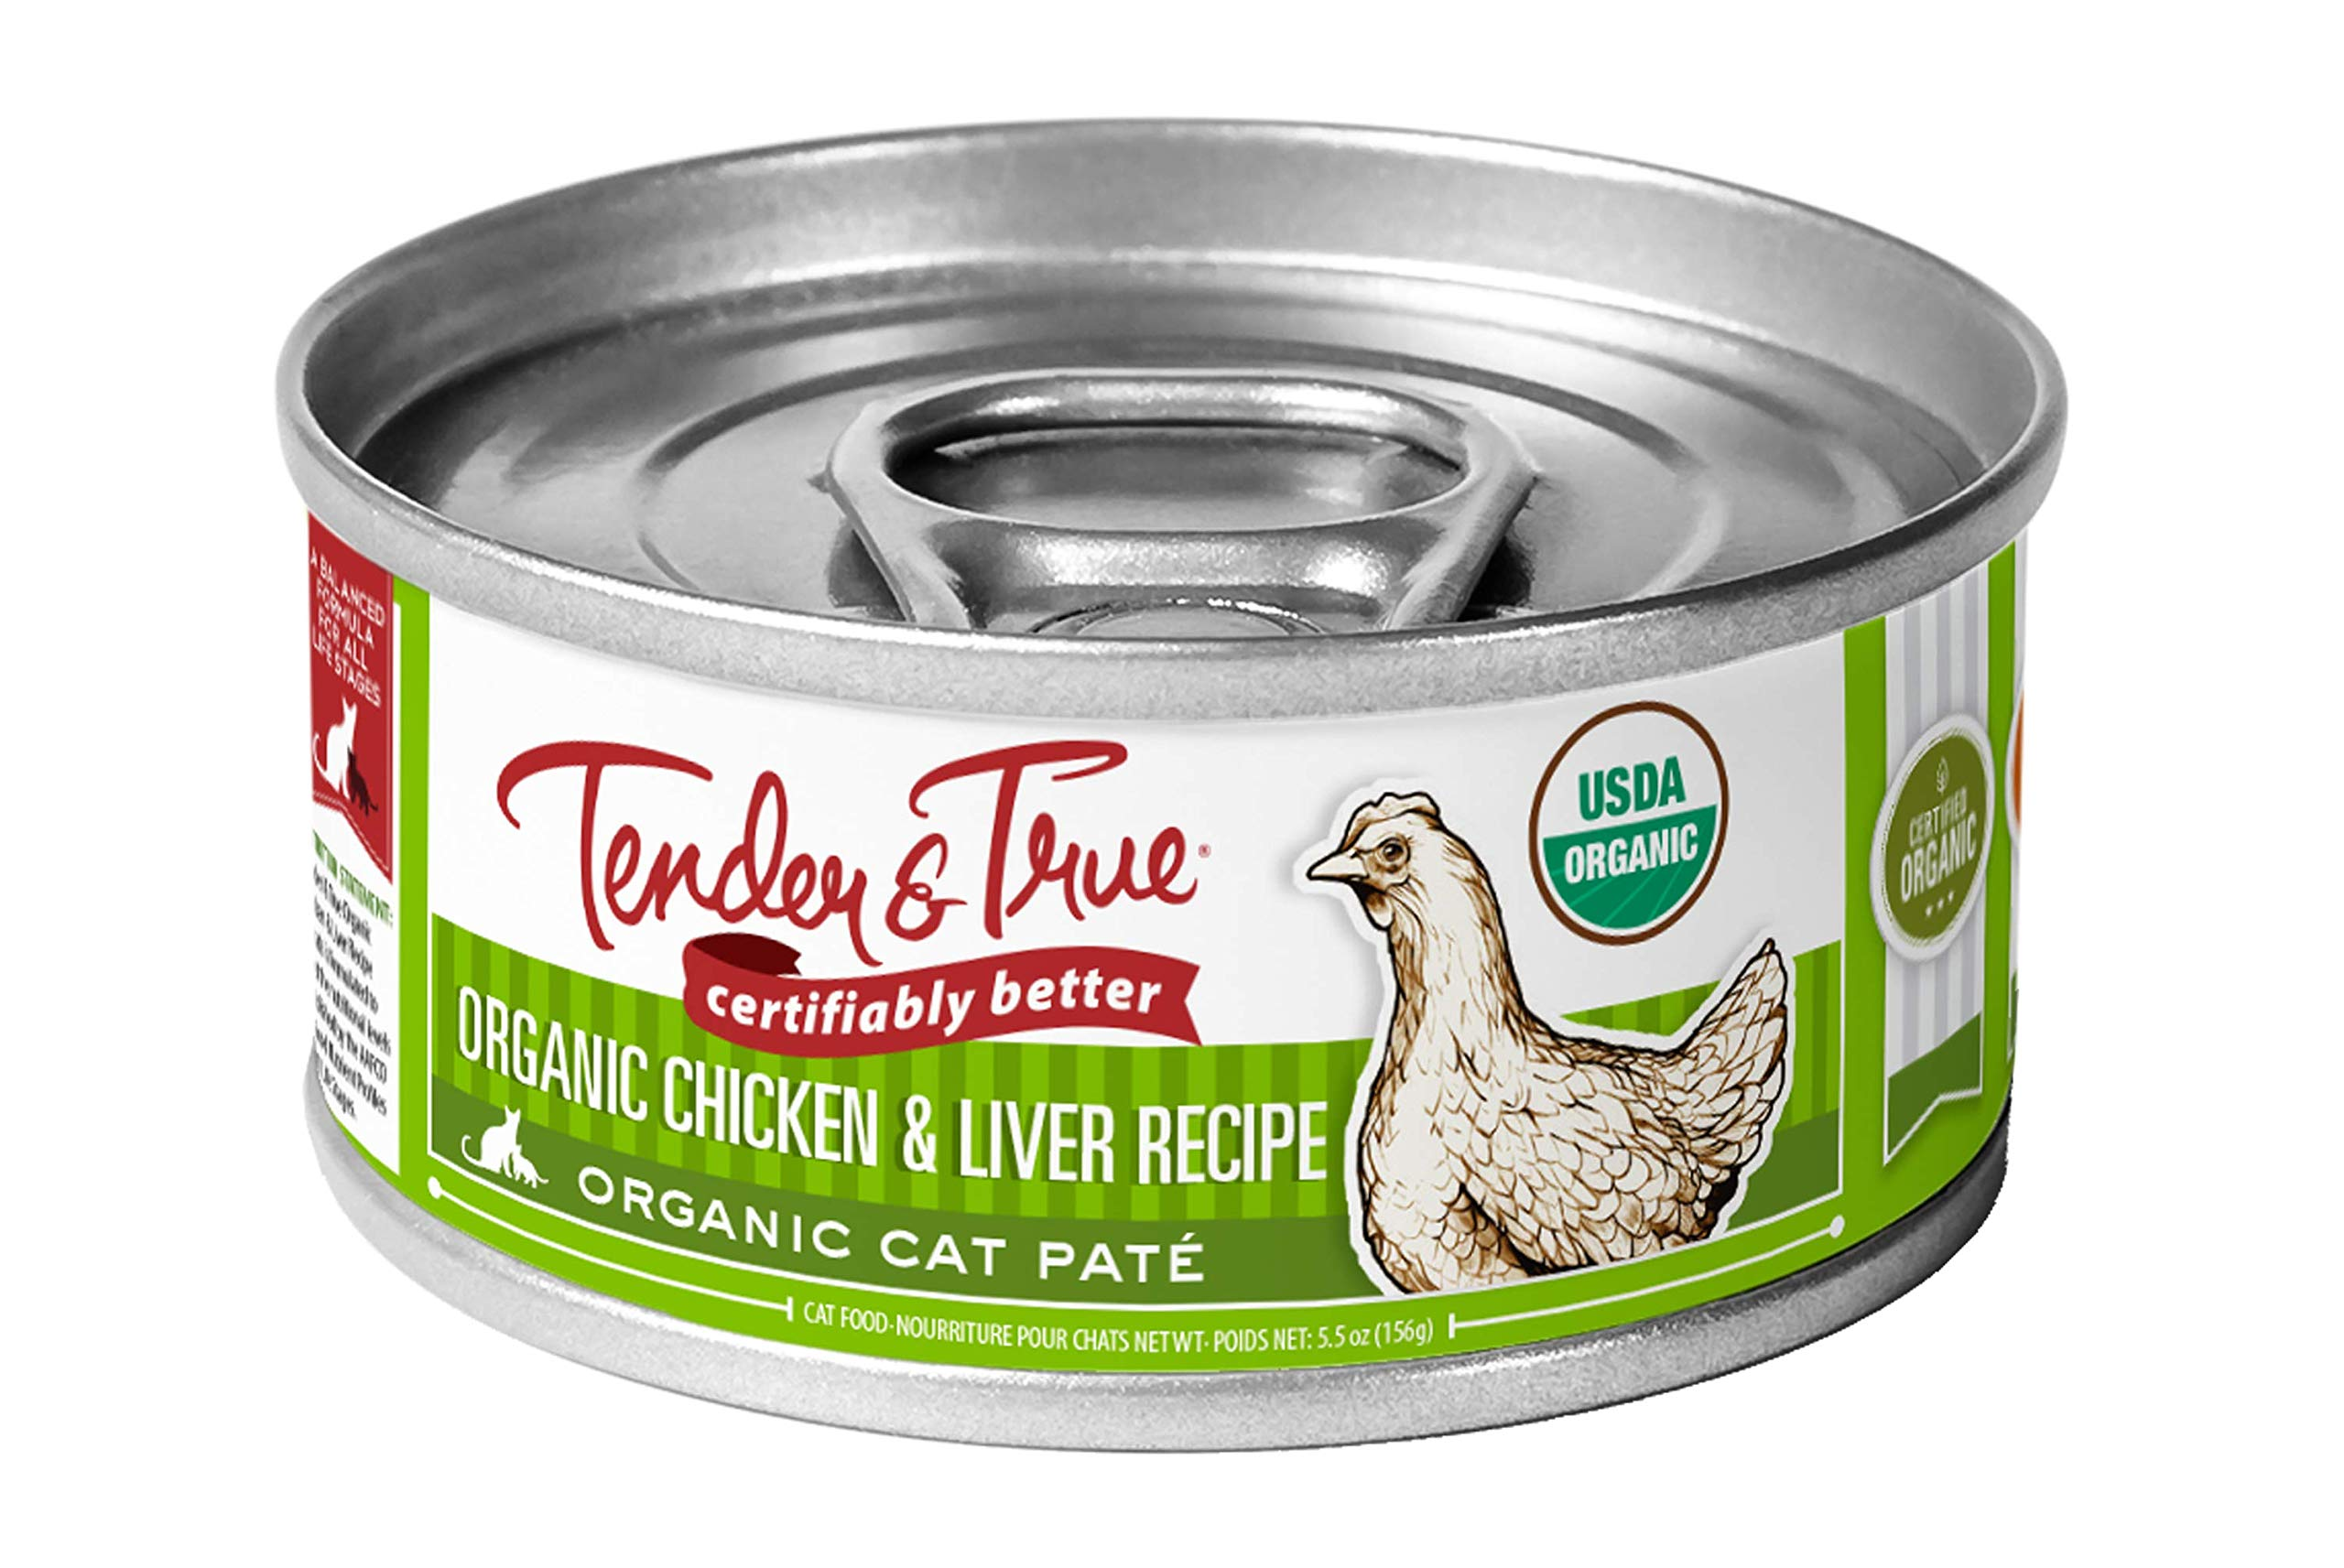 Tender & True Organic Chicken & Liver Recipe Canned Cat Food, 5.5 oz, Case of 24 by Tender & True Pet Nutrition